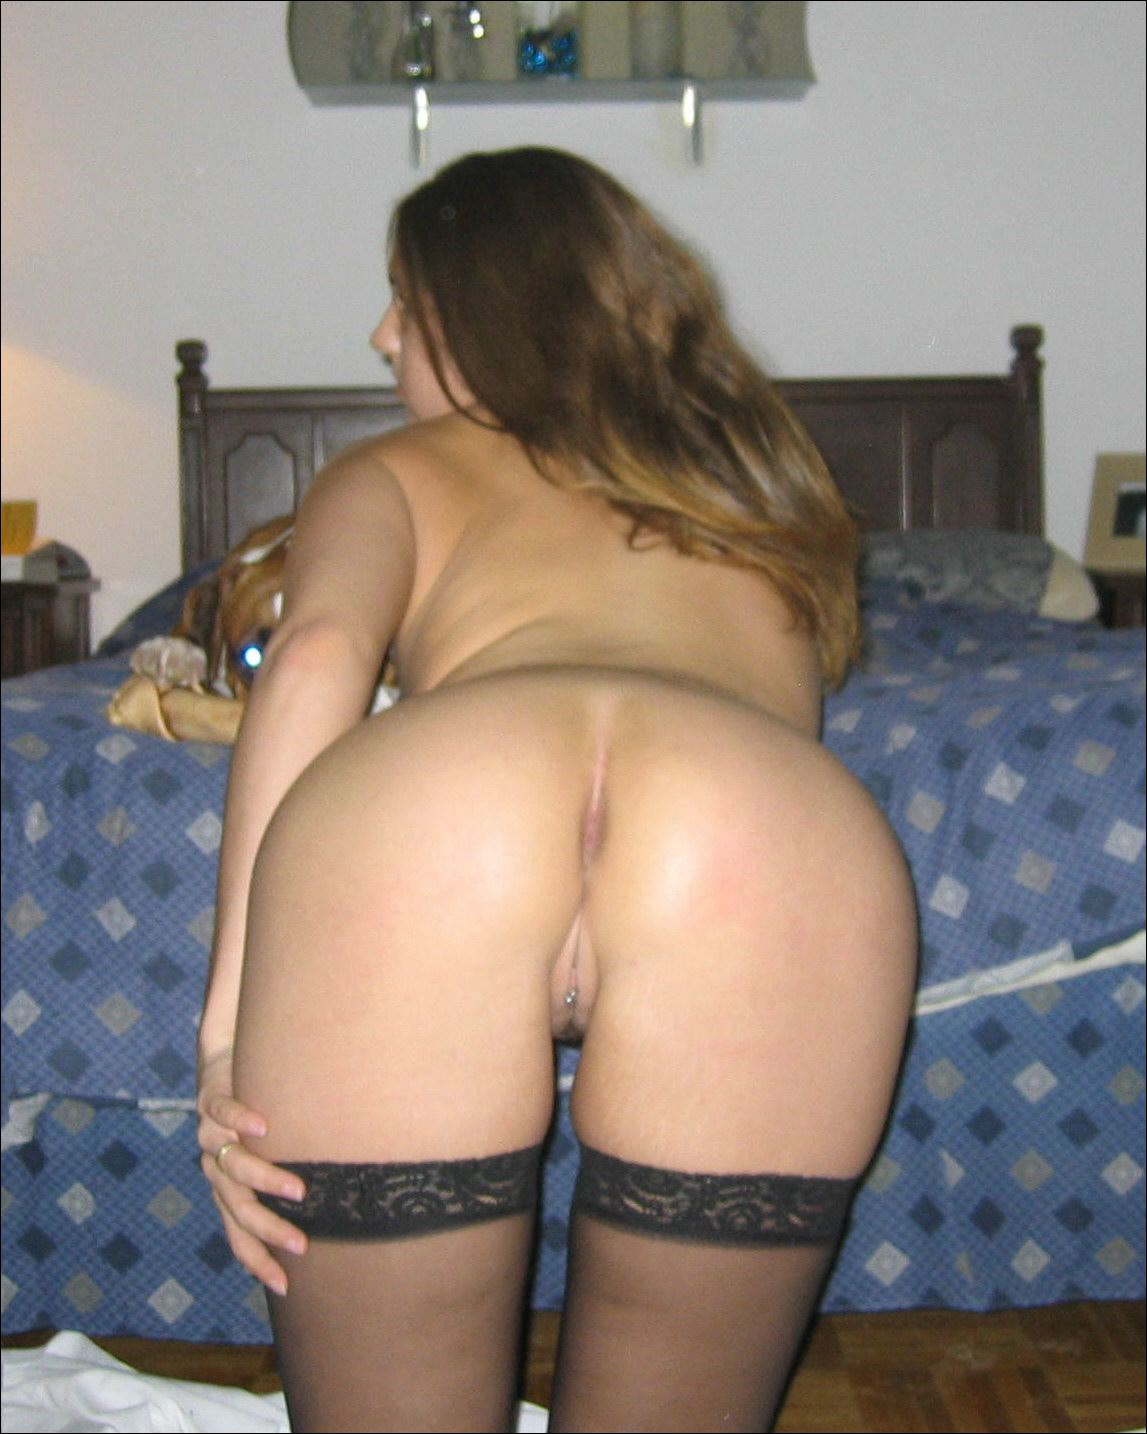 Exgirlfriend best ass nude 14